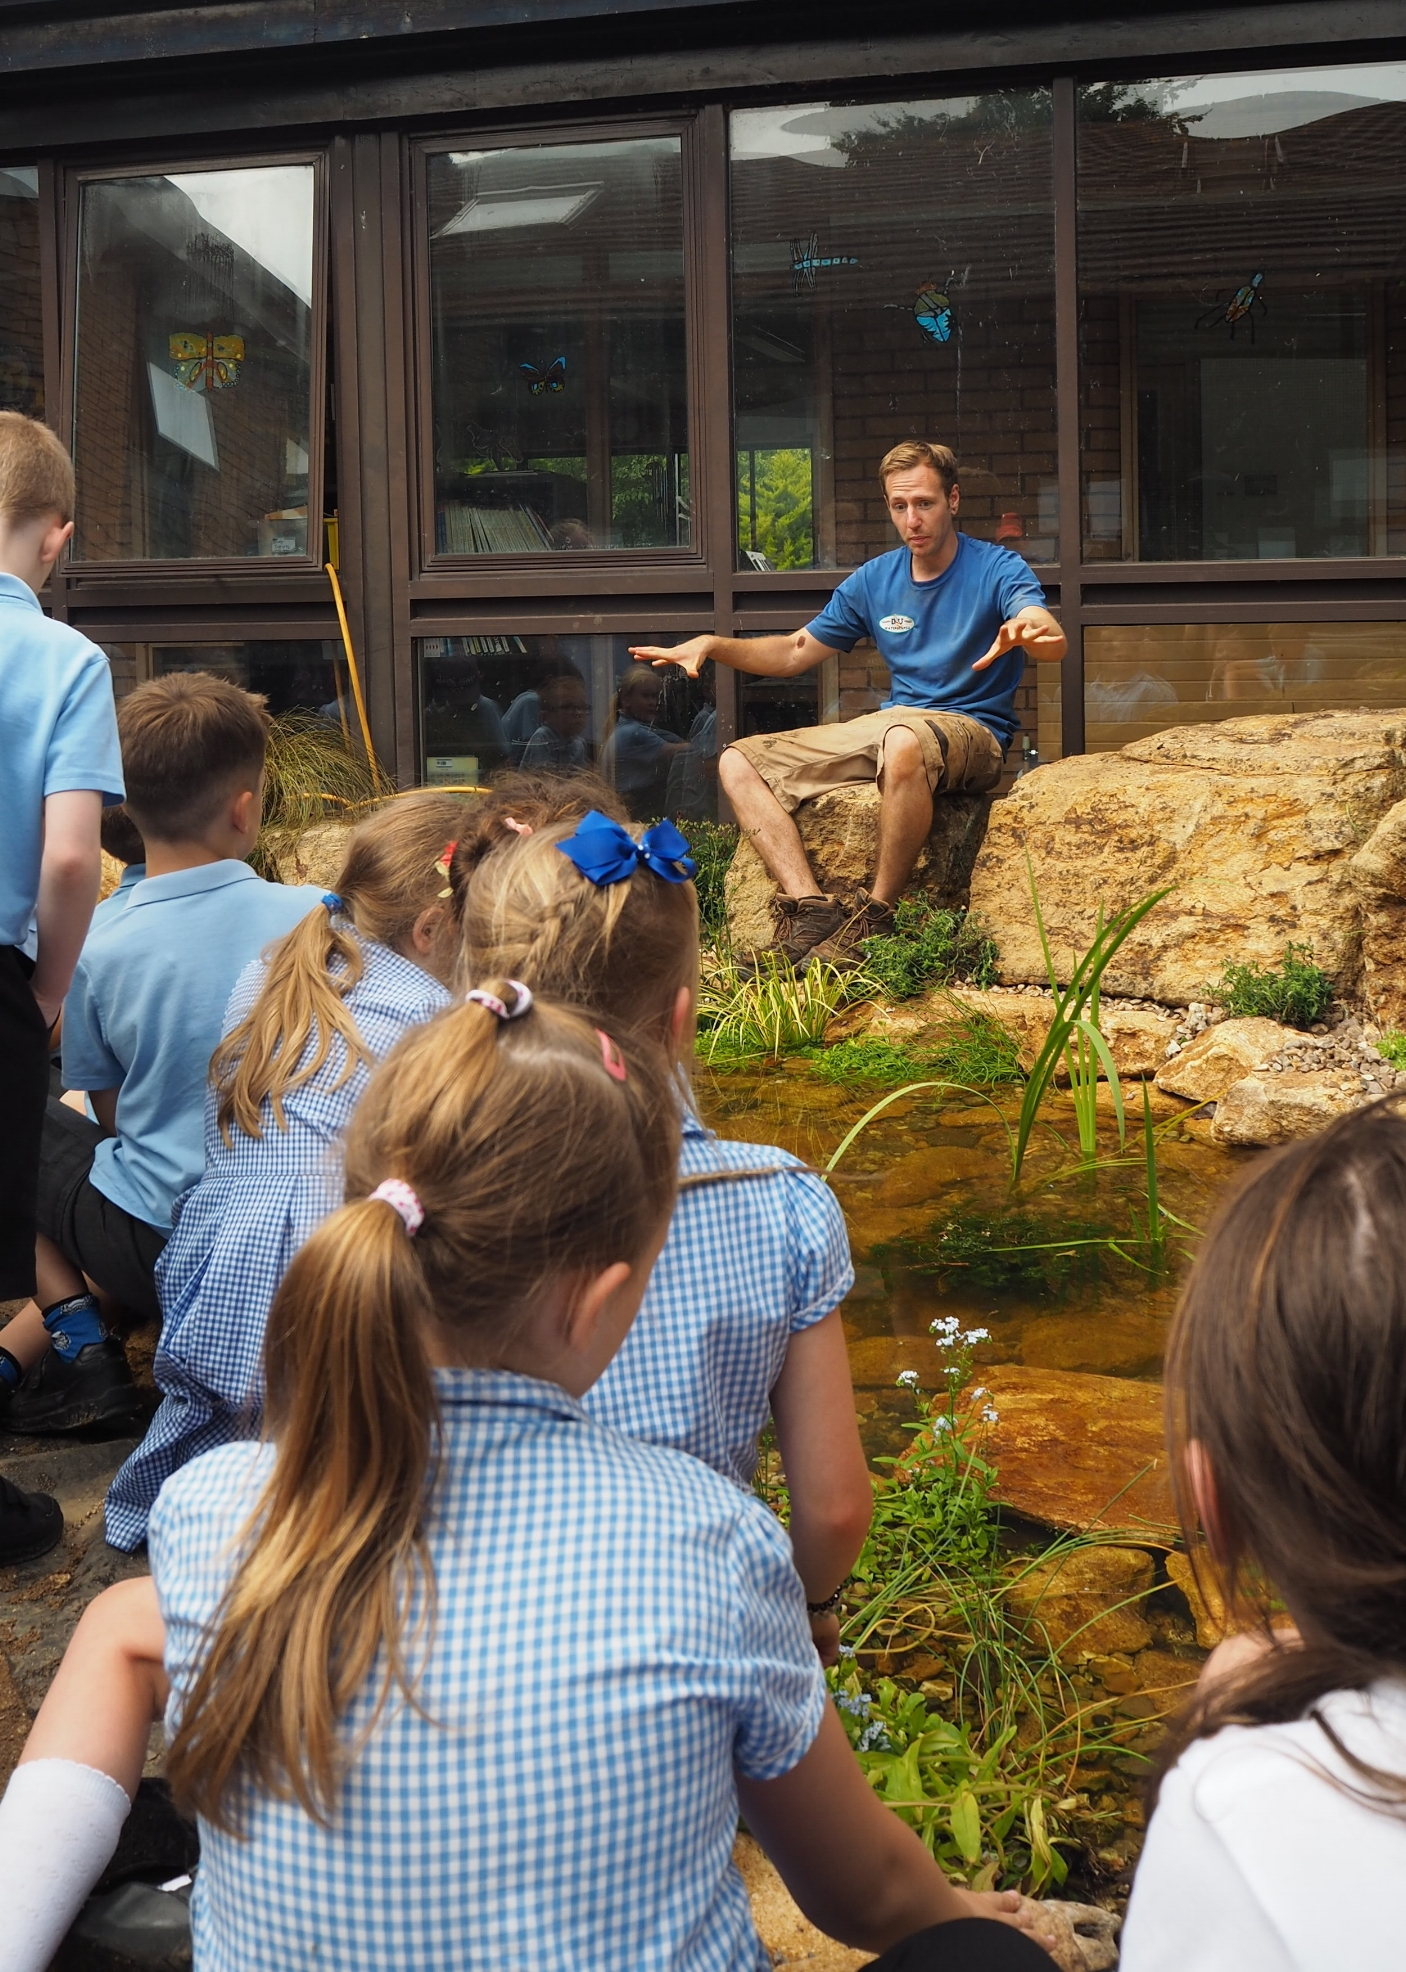 Educational ecosystem pond, Taunton, Somerset - Outside ecosystem pond classroom